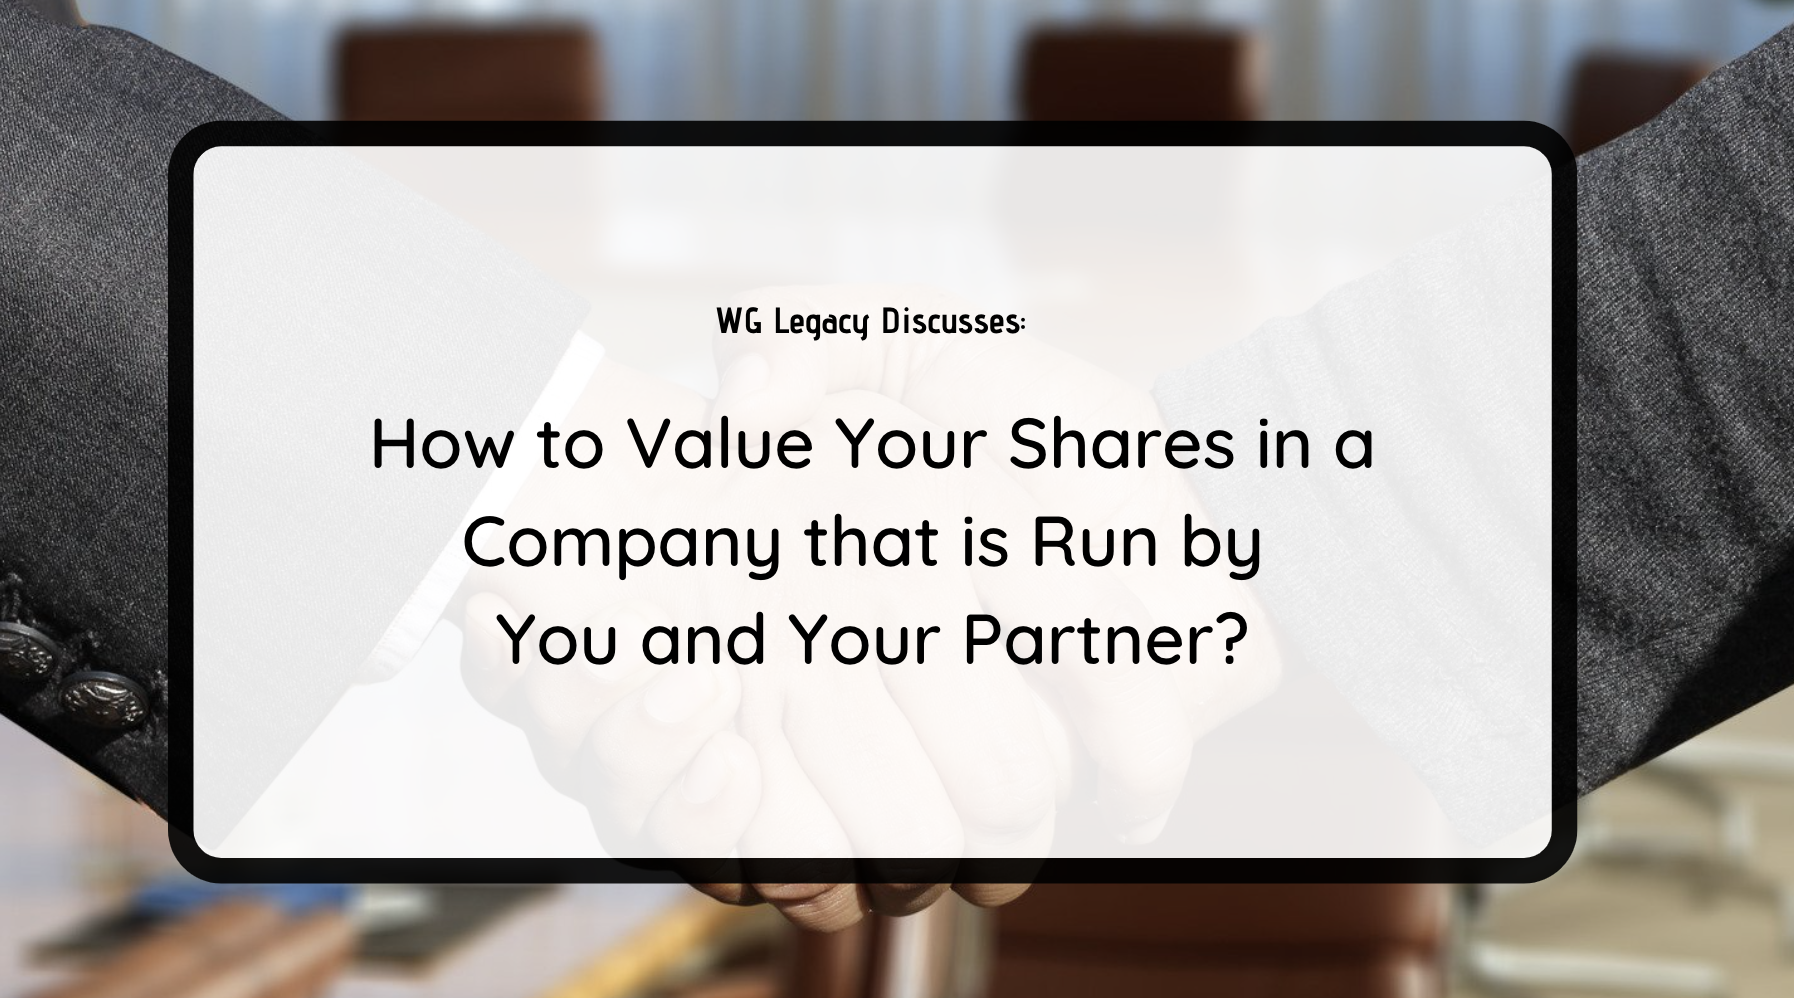 How to Value Your Shares in a Company that is Run by You and Your Partner?